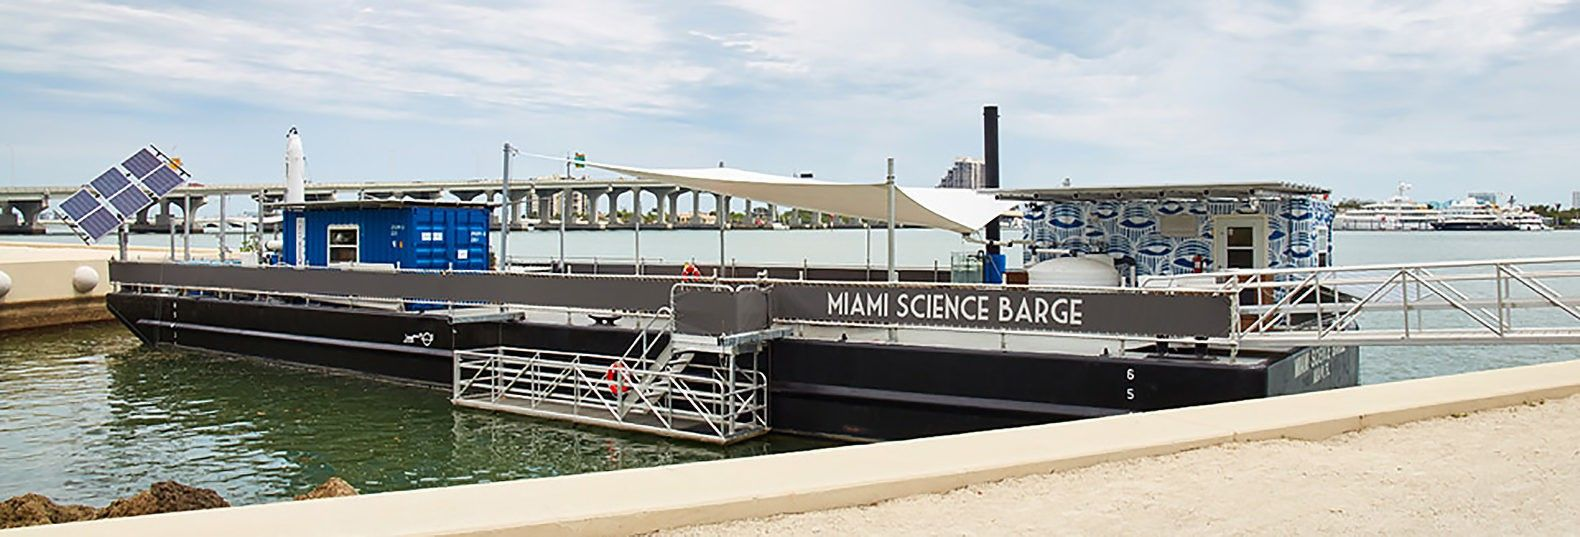 Solar-powered Miami Science Barge teaches kids about sustainability